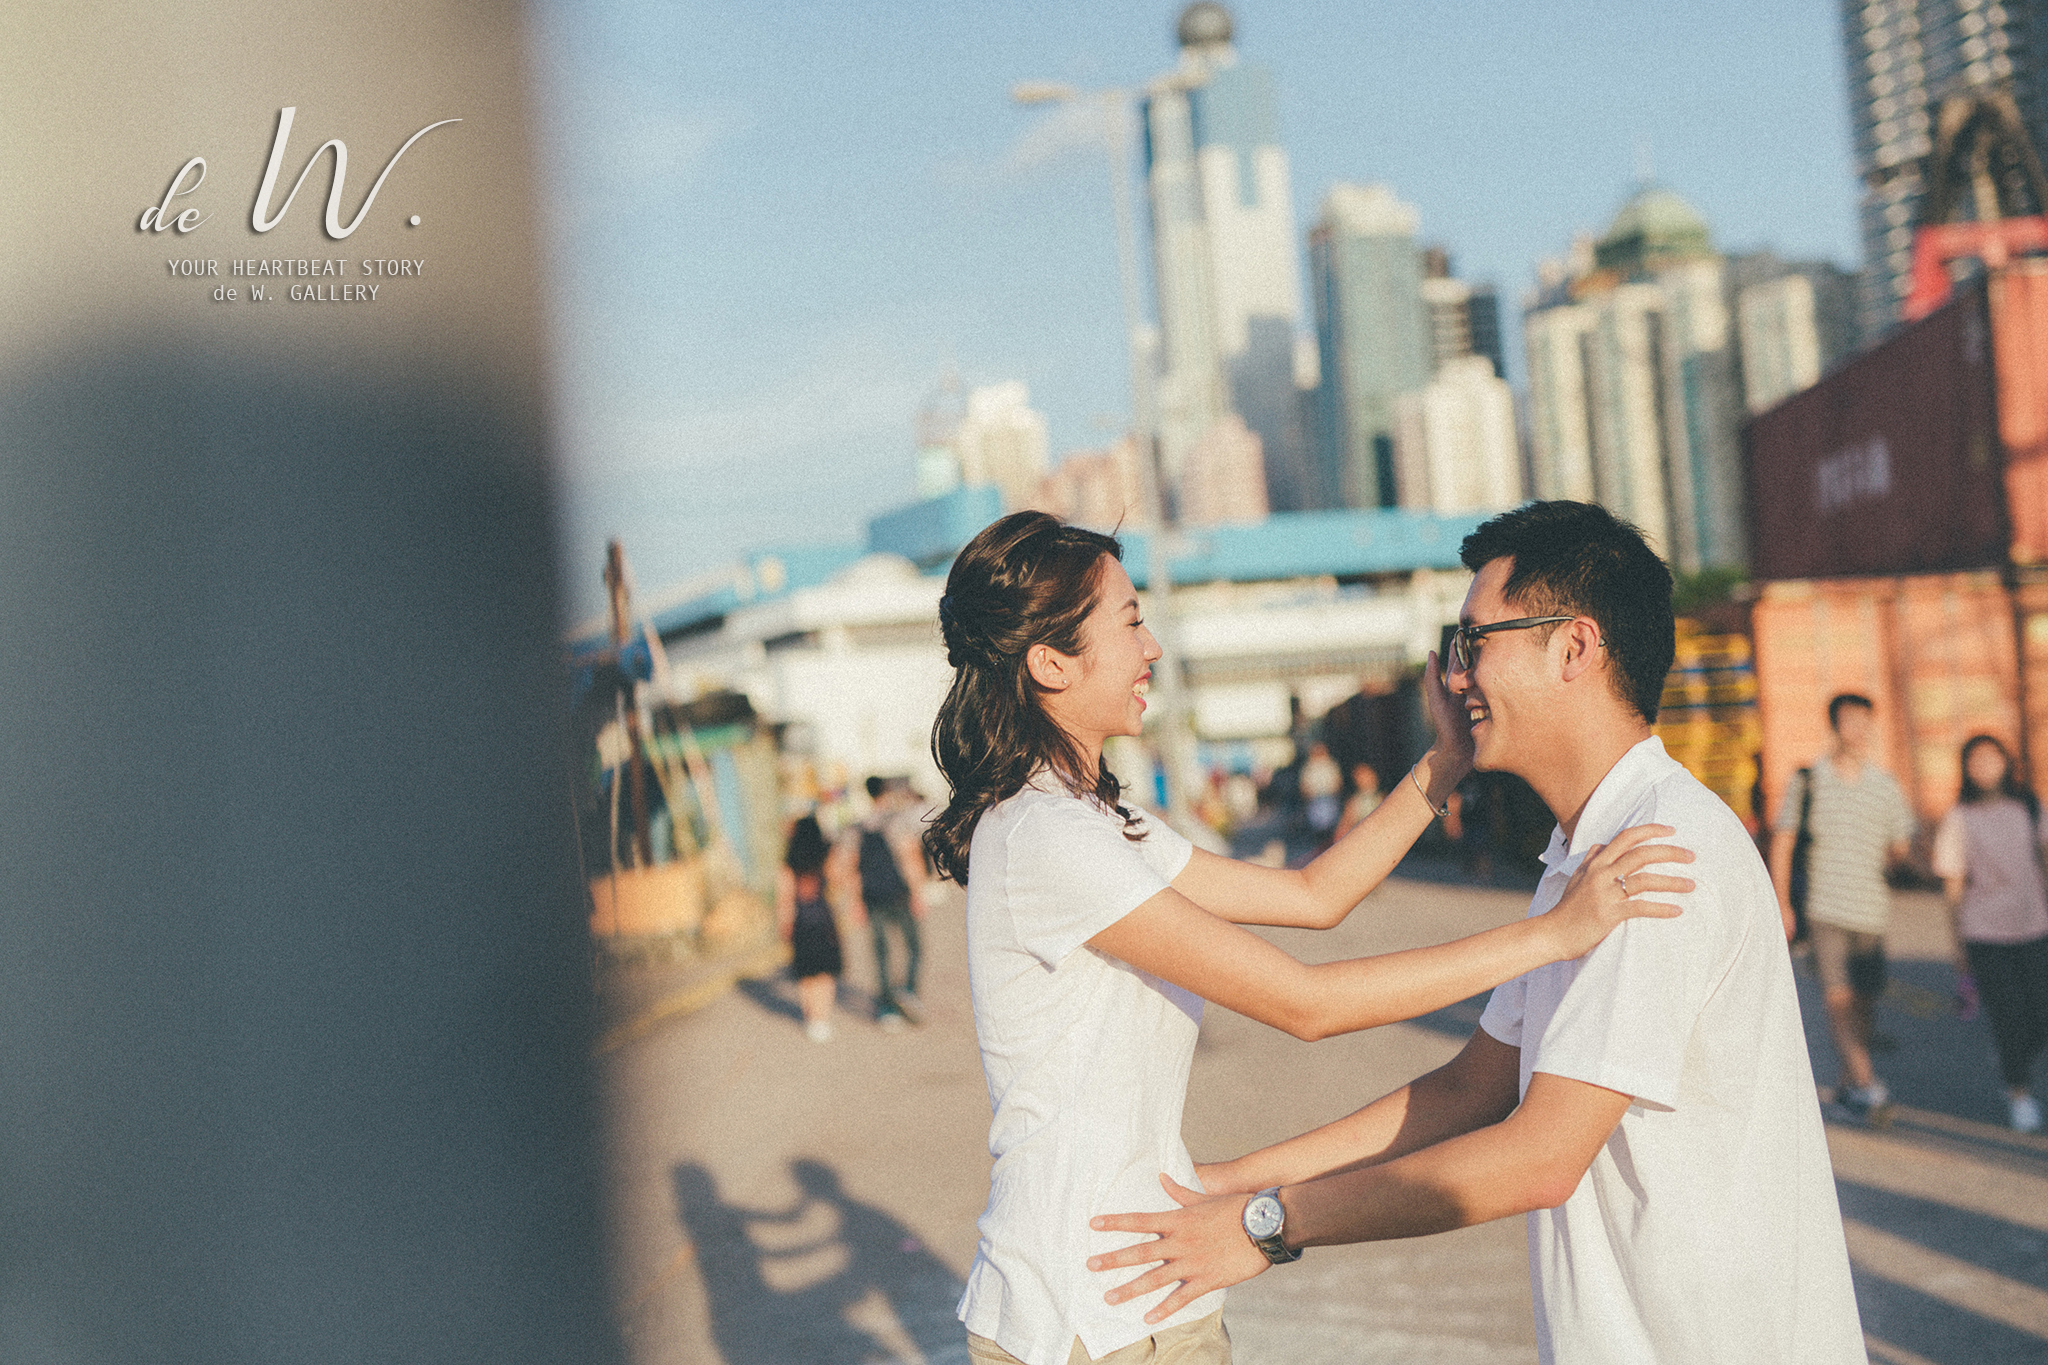 2048 de w gallery Film style hong kong 底片 拍拖 engagement vsco 故事 中環 西環 central-28